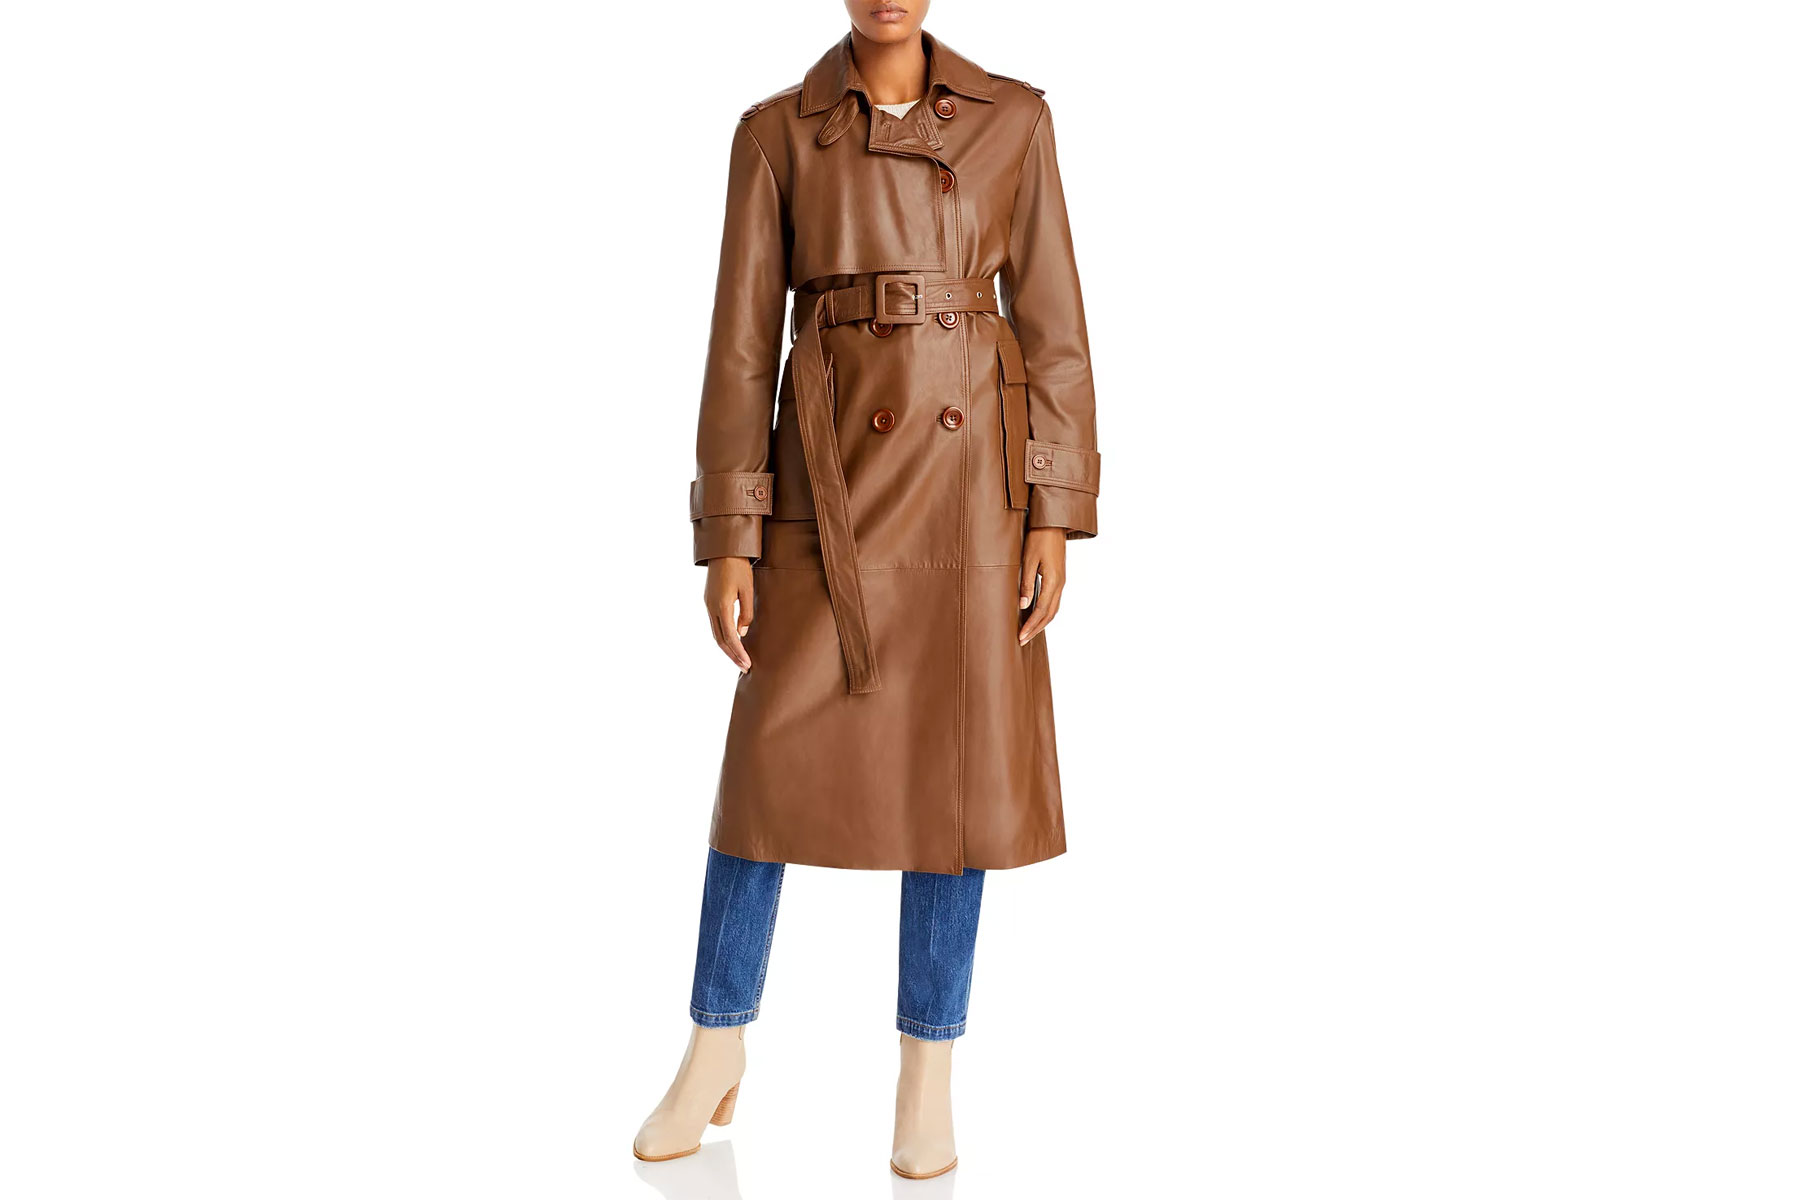 Women's brown/tan leather trench coat